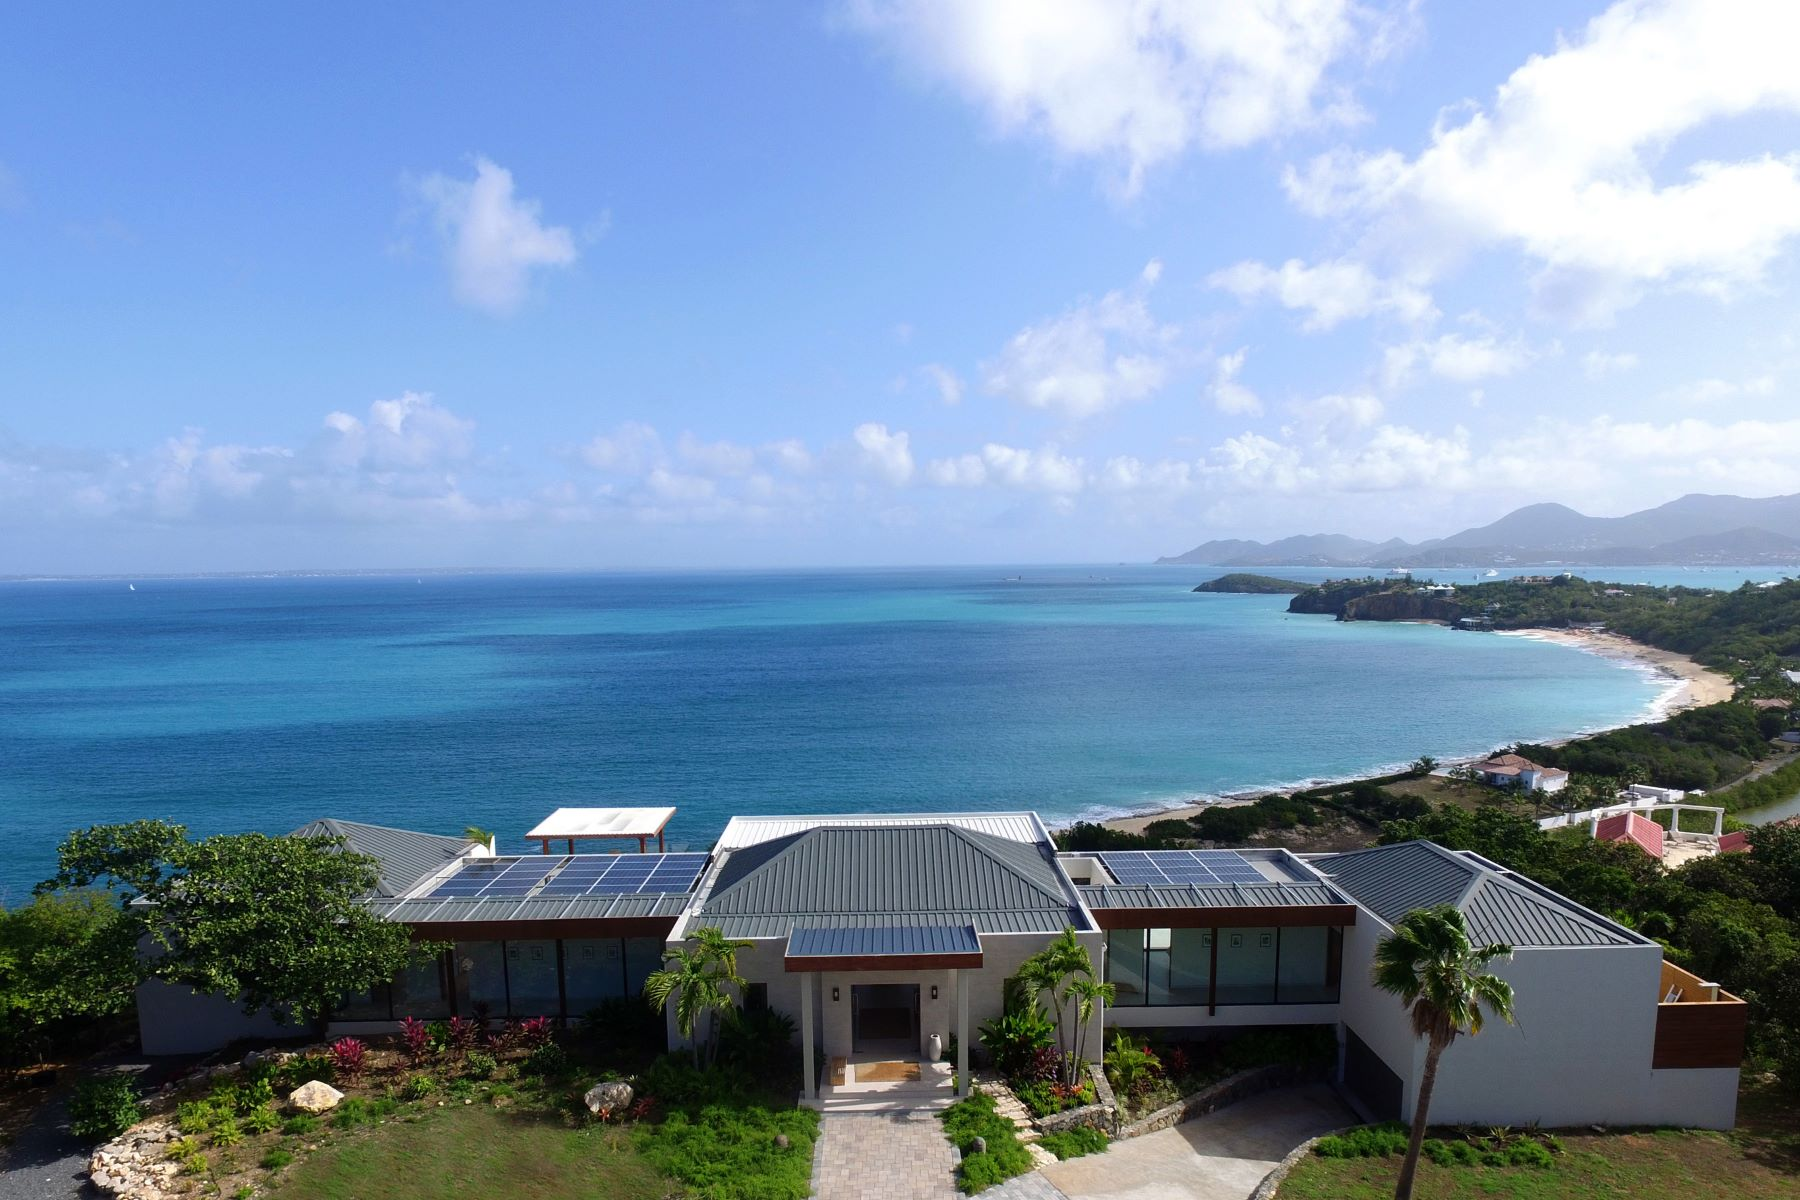 Additional photo for property listing at Amandara Amandara Terres Basses, Cities In Saint Martin 97150 St. Martin